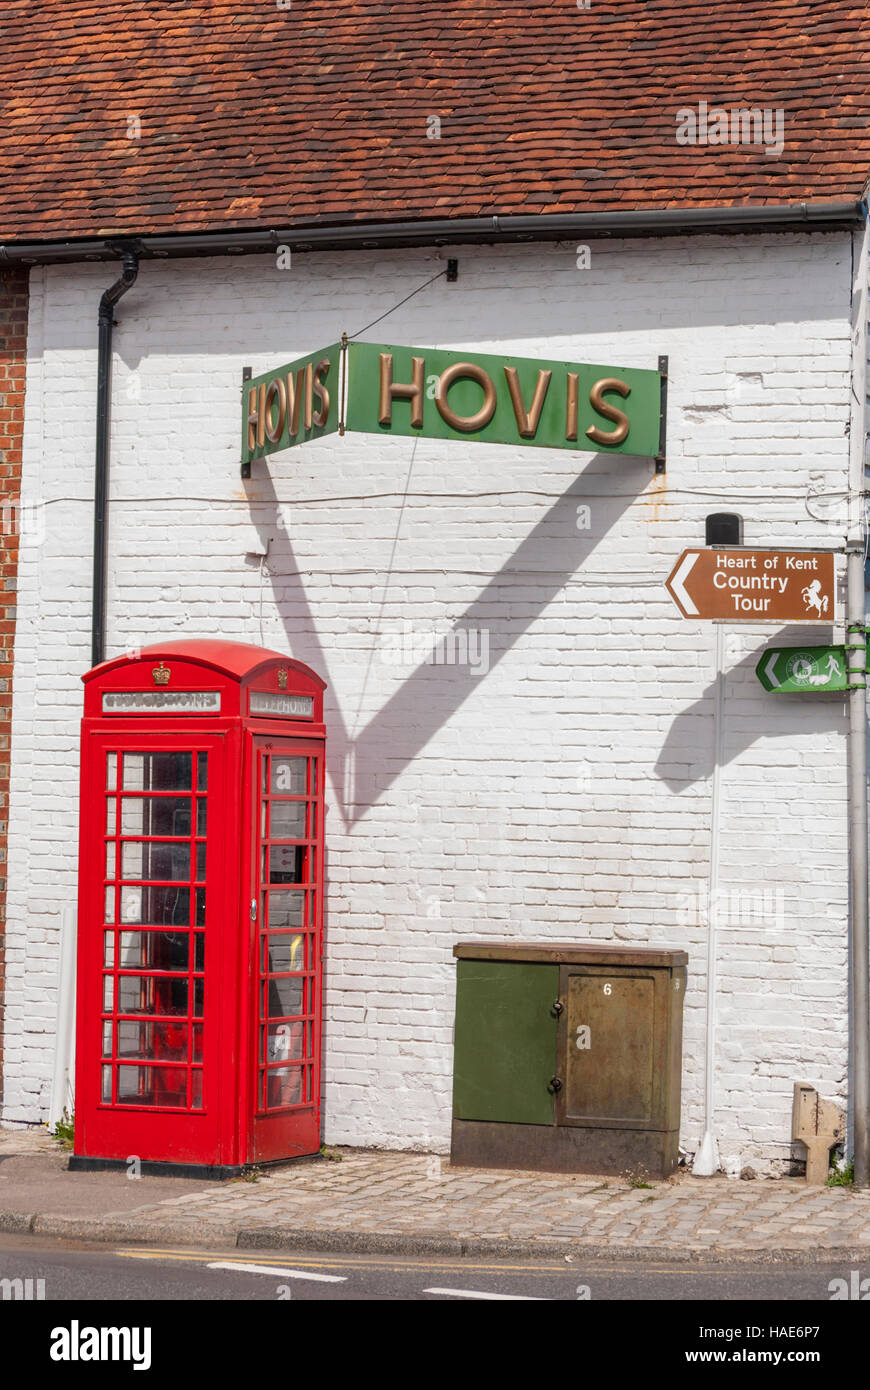 Red phone box and Hovis advertising sign in Yalding village in kent. - Stock Image